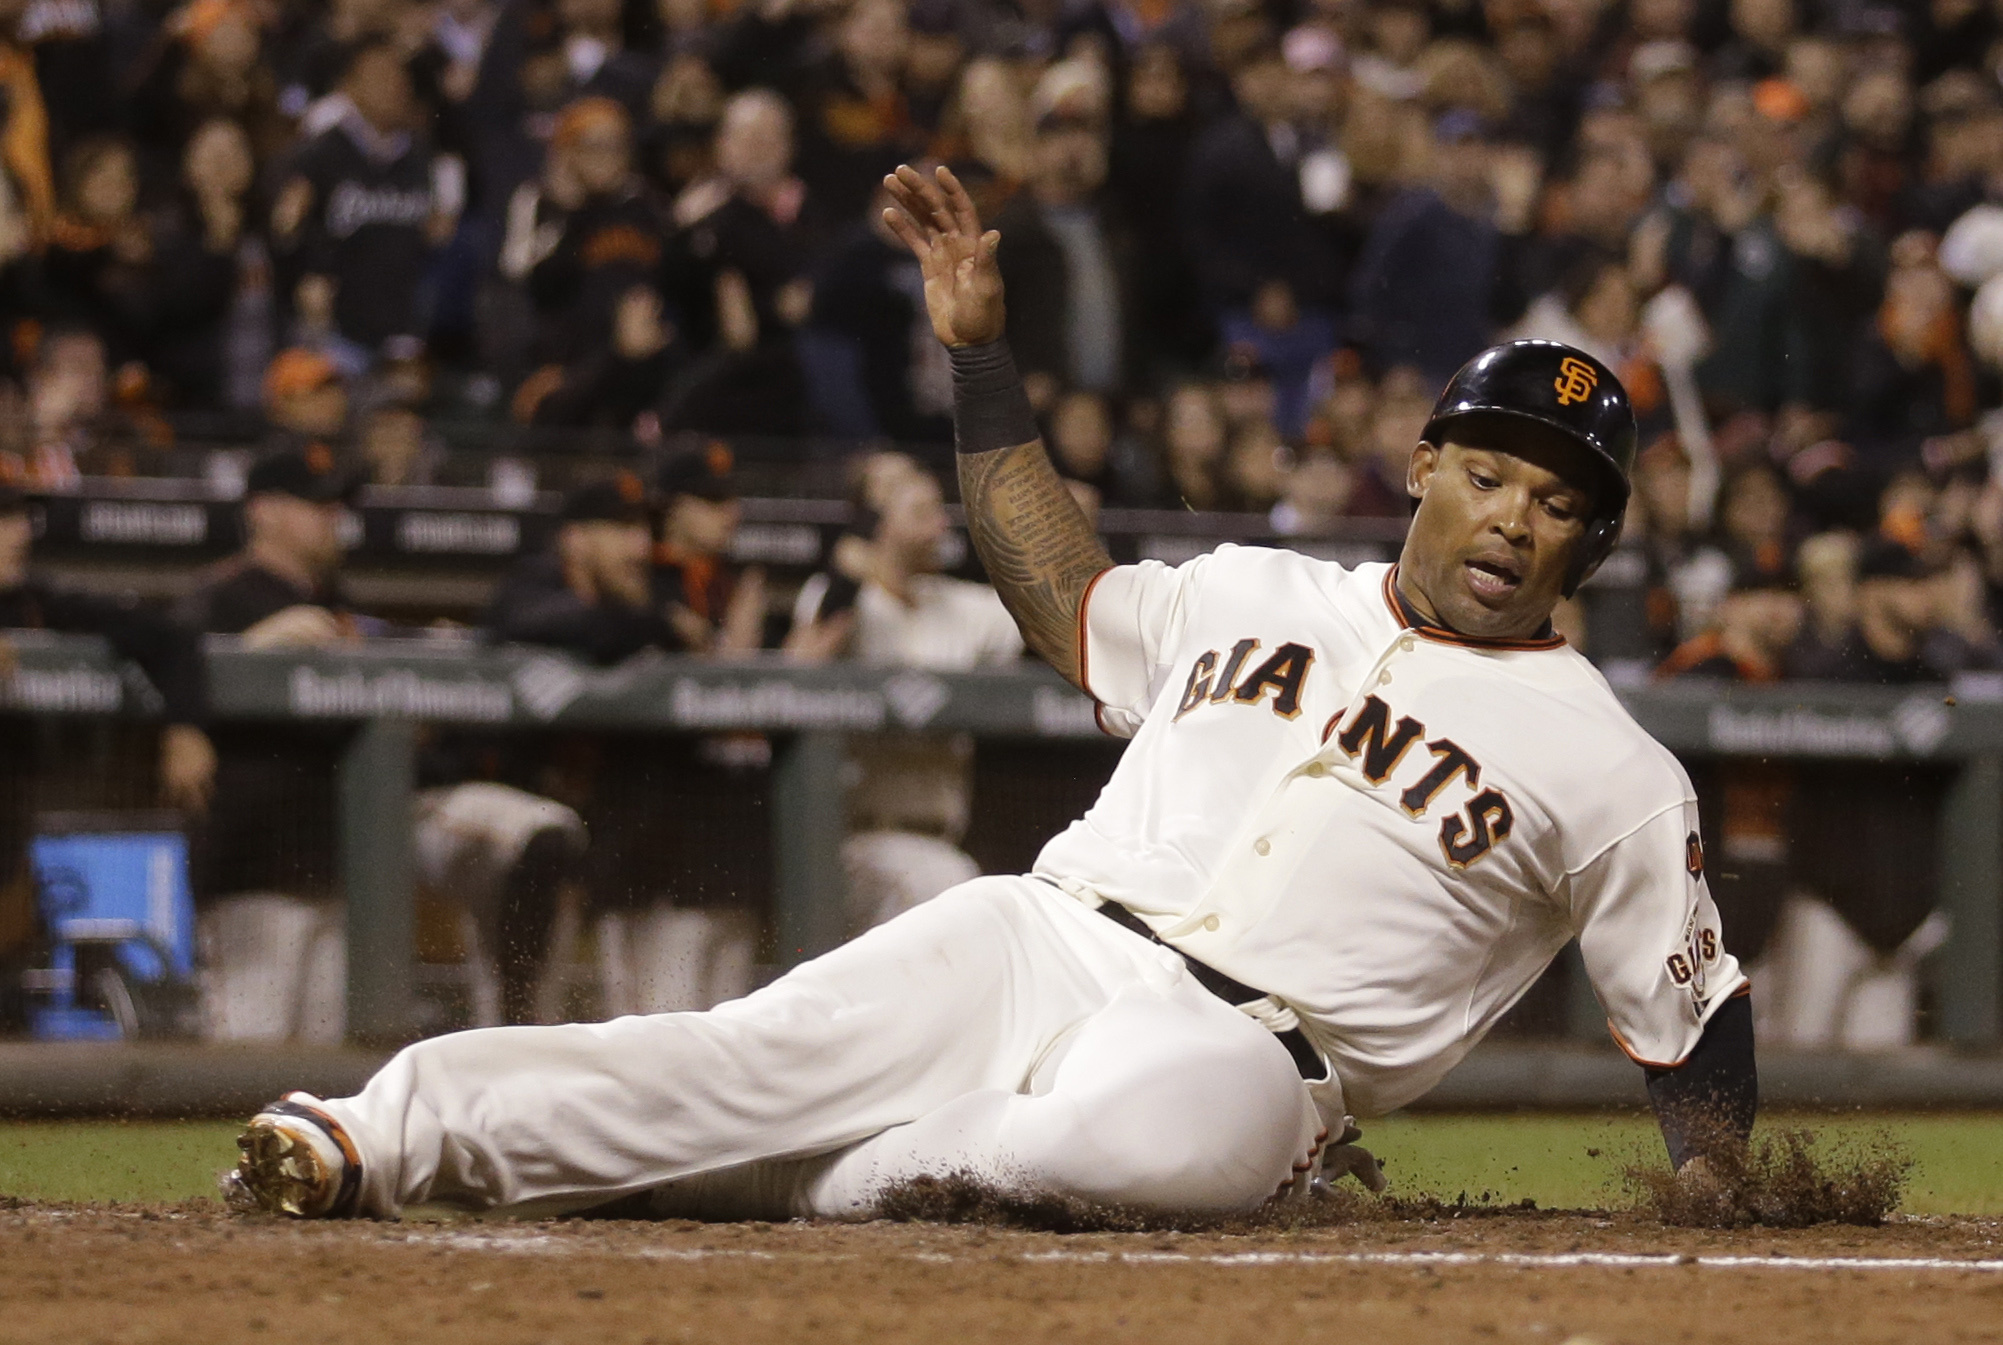 FILE - In this Tuesday, Sept. 15, 2015 file photo, San Francisco Giants' Marlon Byrd slides to score against the Cincinnati Reds in the sixth inning of a baseball game in San Francisco. The Giants declined their 2016 contract options on outfielders Byrd a